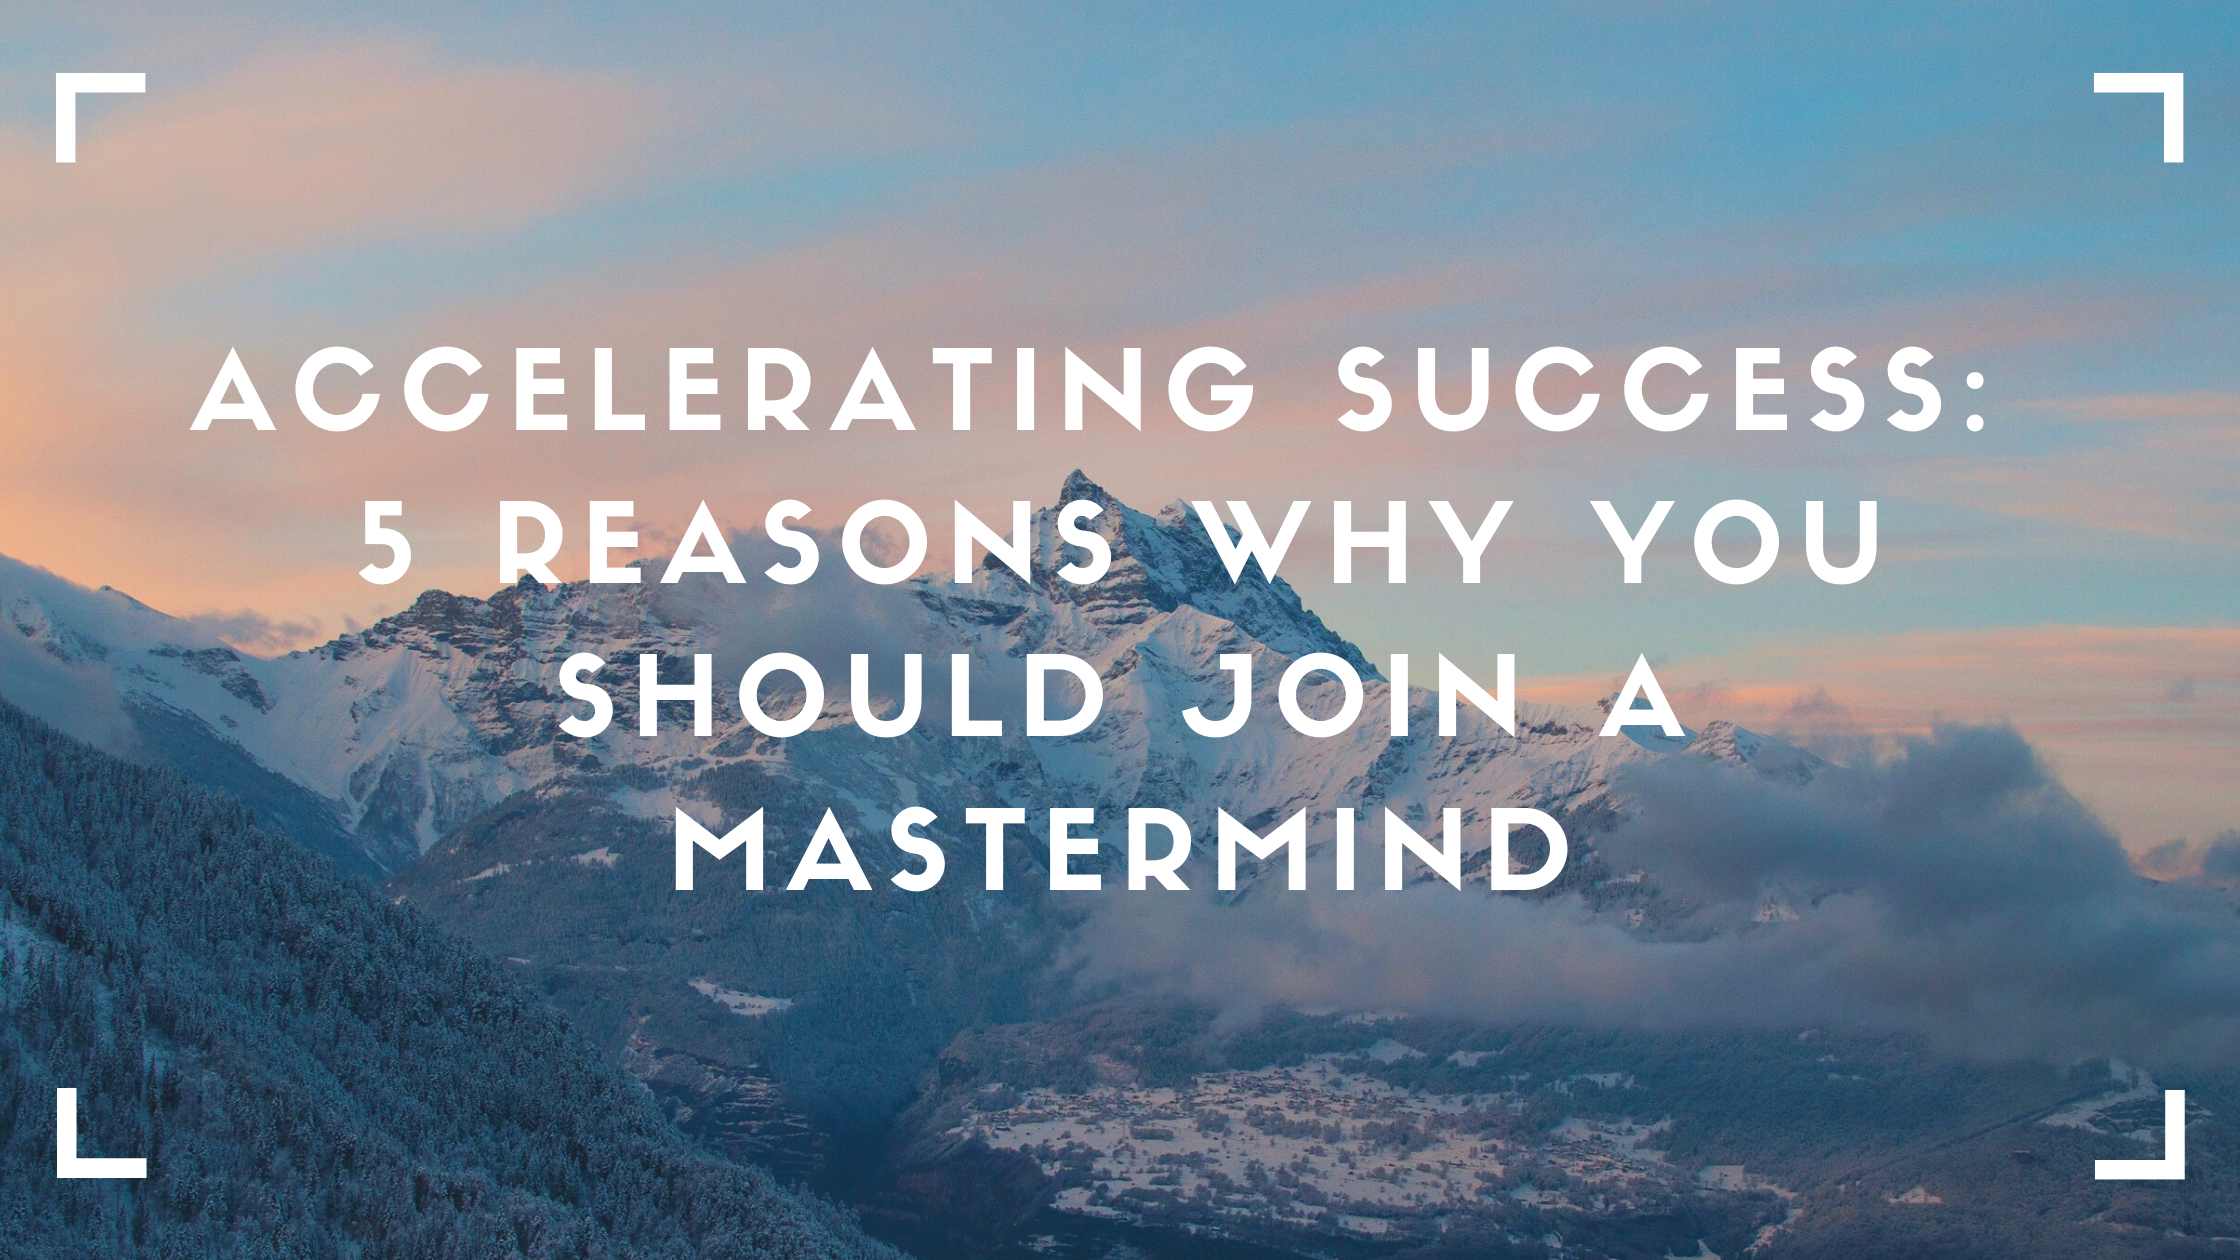 Not only is joining a mastermind is beneficial both professionally and personally, but it also can help you achieve your goals and overcome barriers in your life.